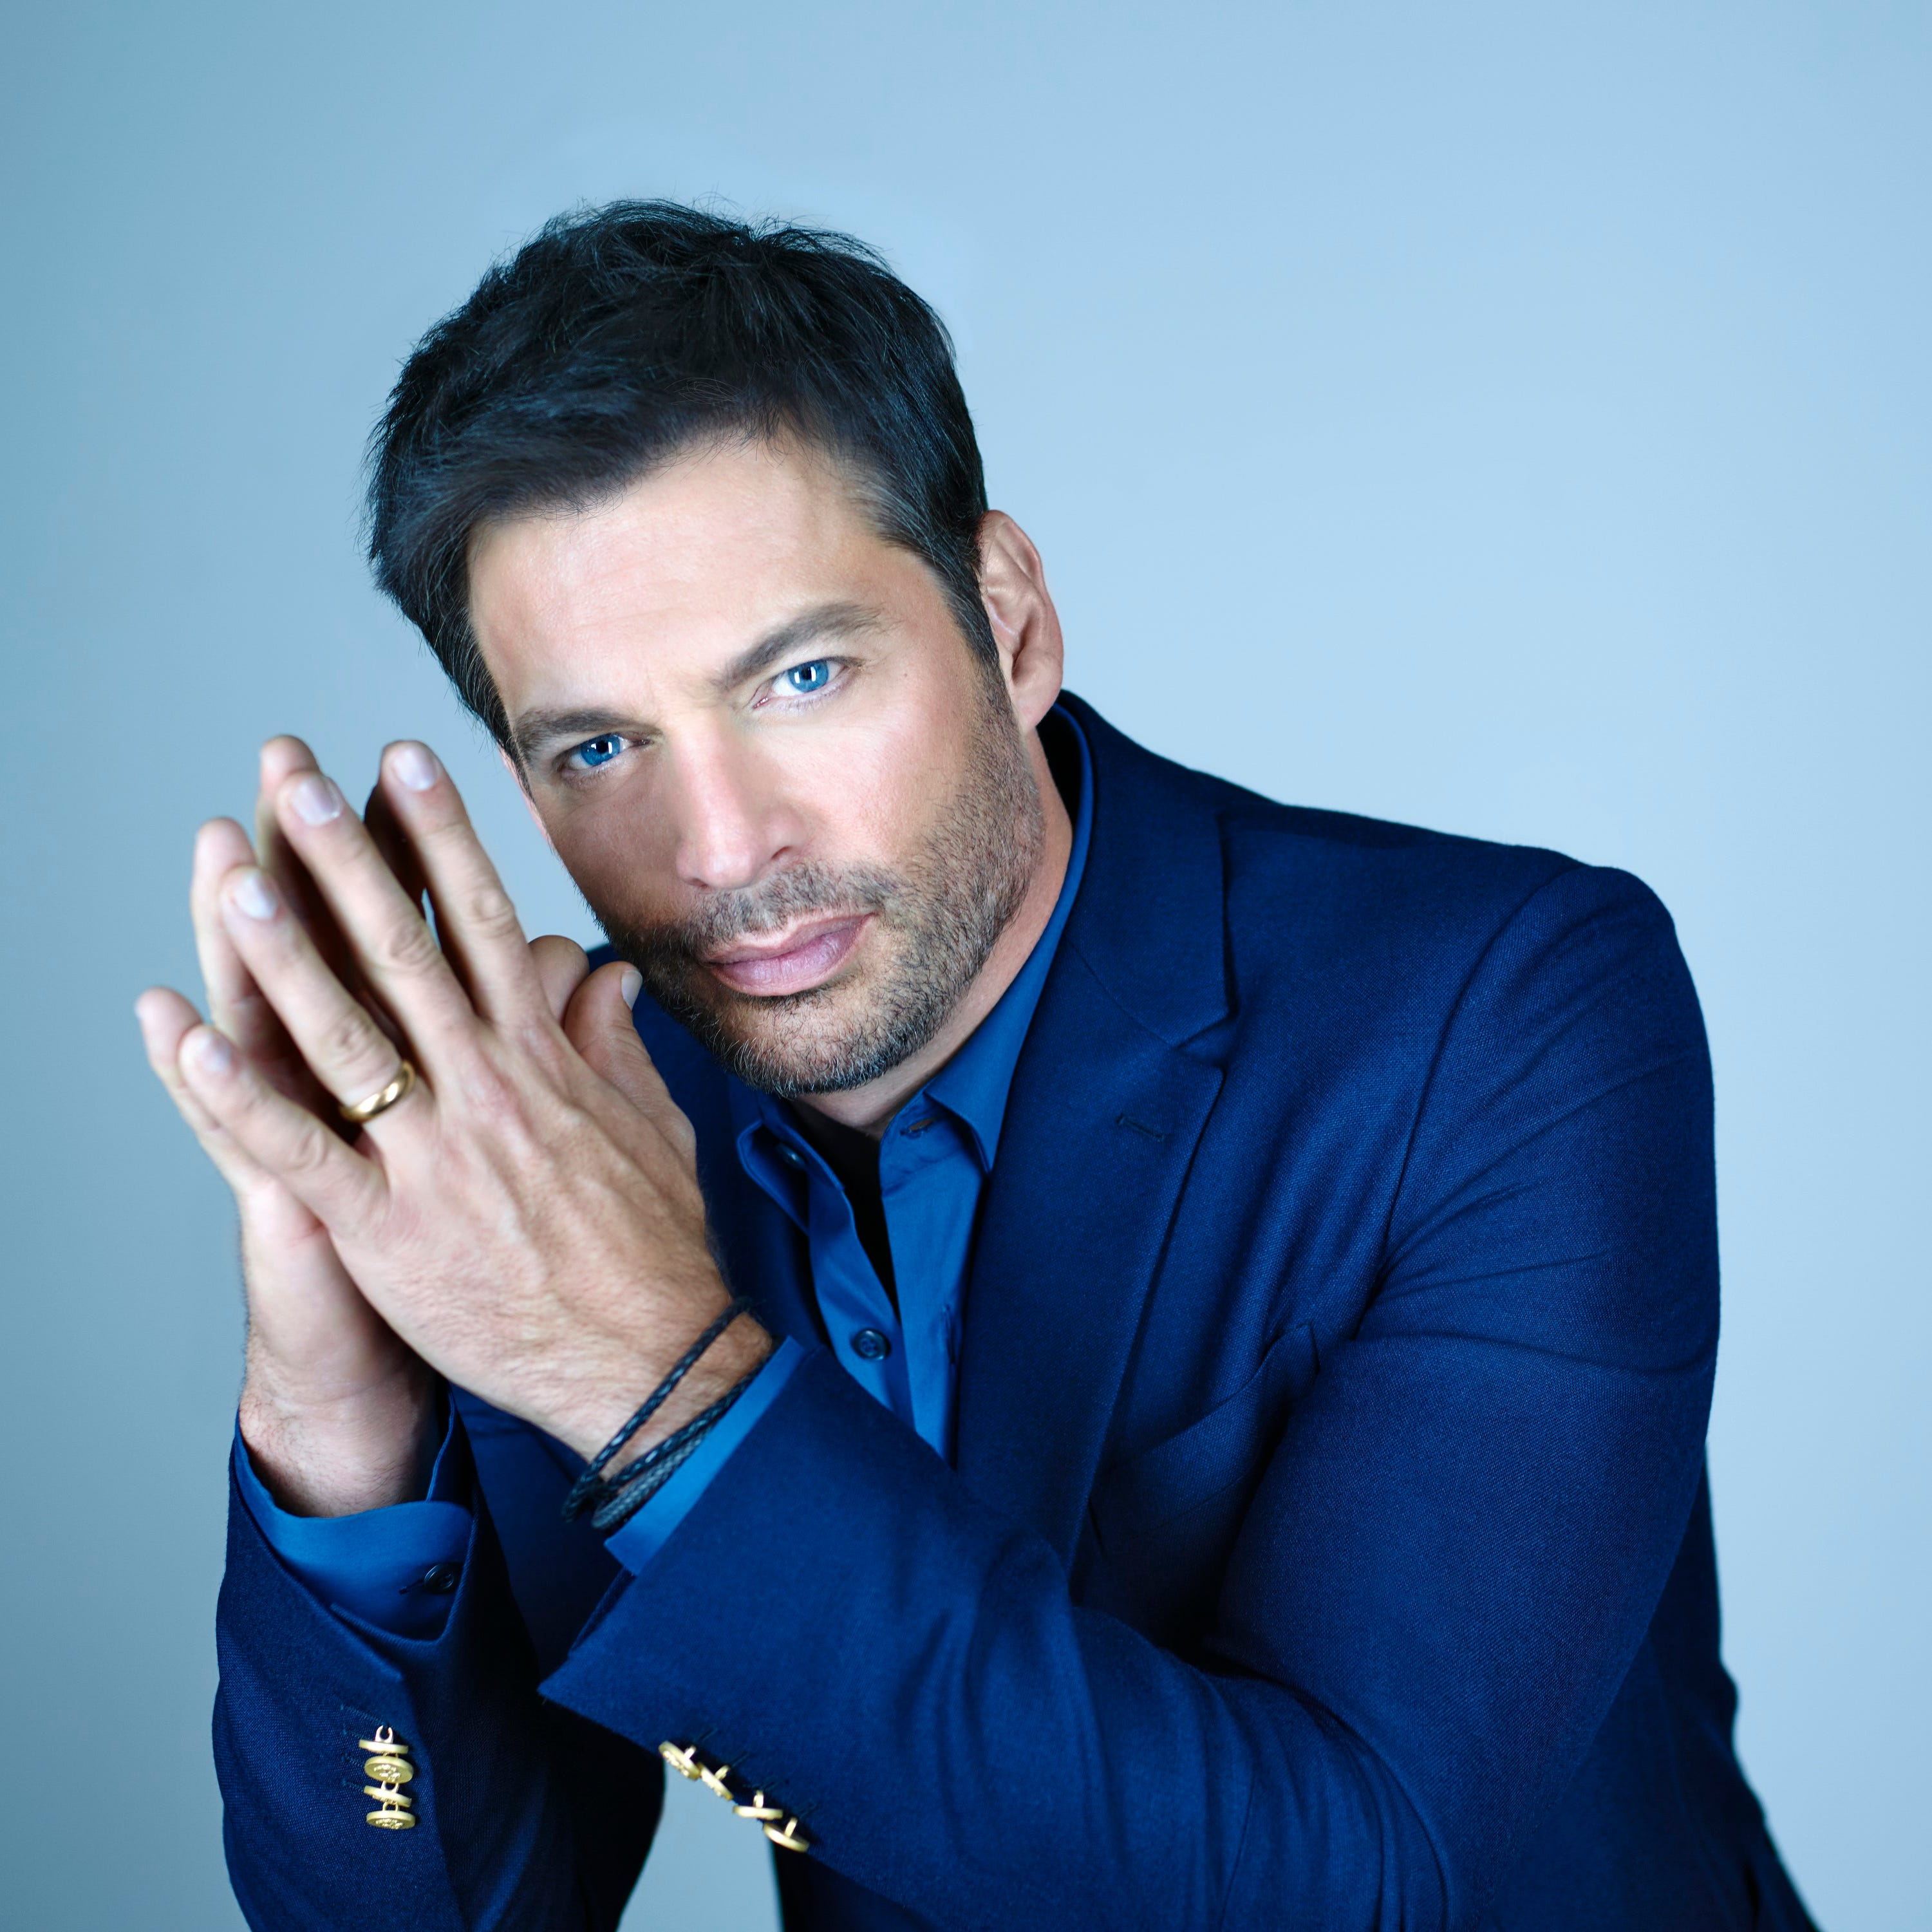 Harry Connick Jr. tour will make a stop in Shreveport